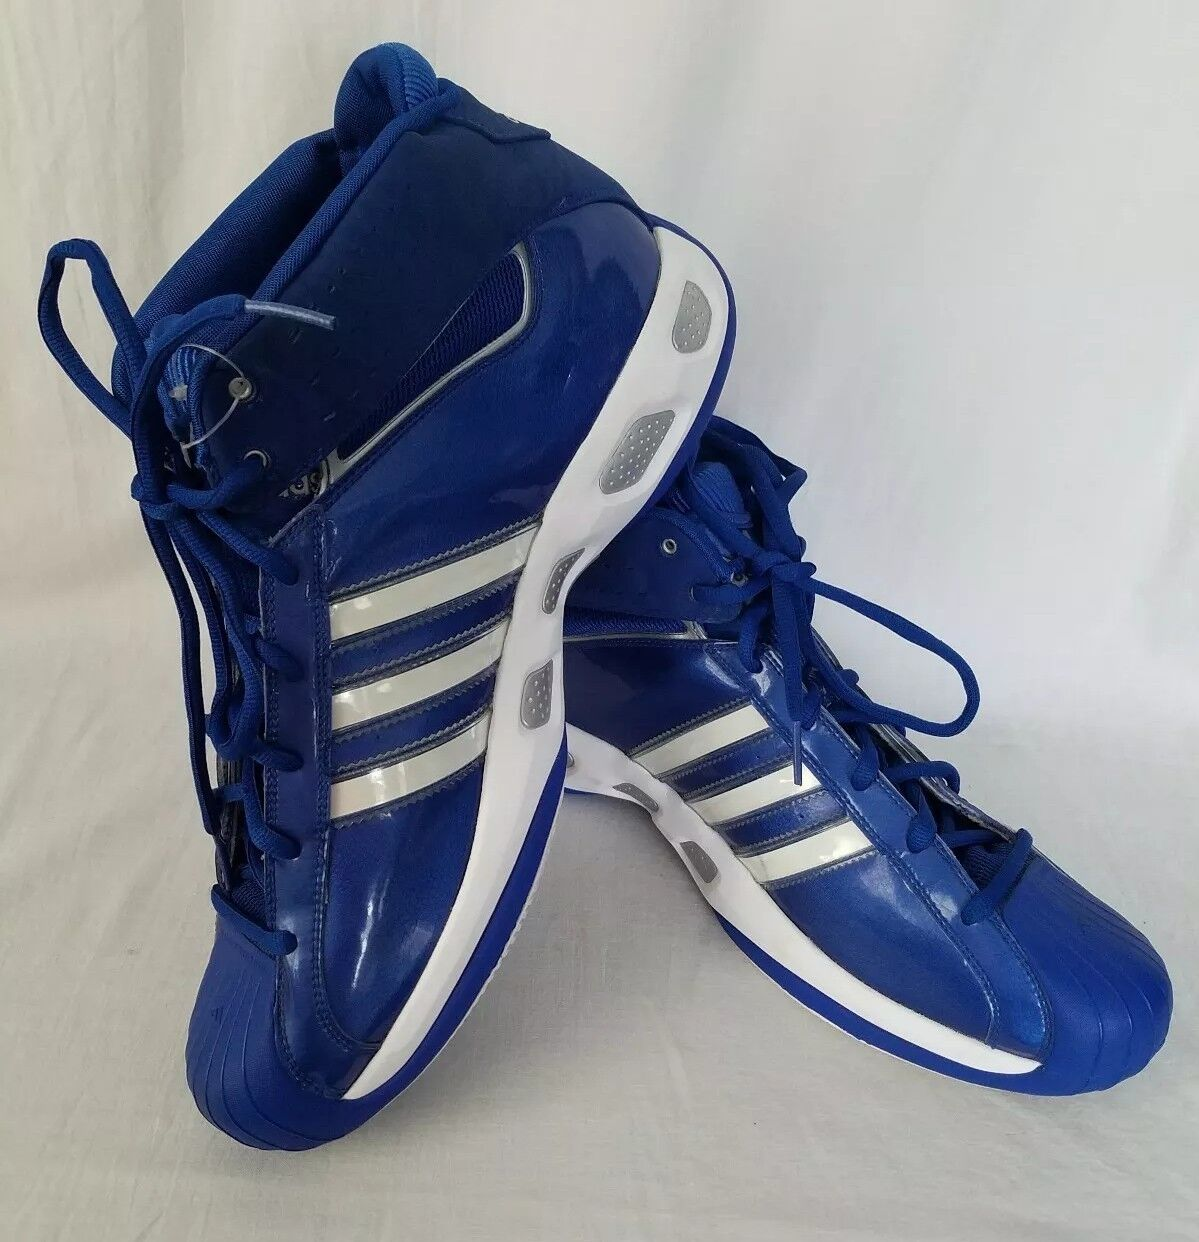 Adidas Pro Model bluee White High Top shoes Sneakers Basketball Mens Size 18